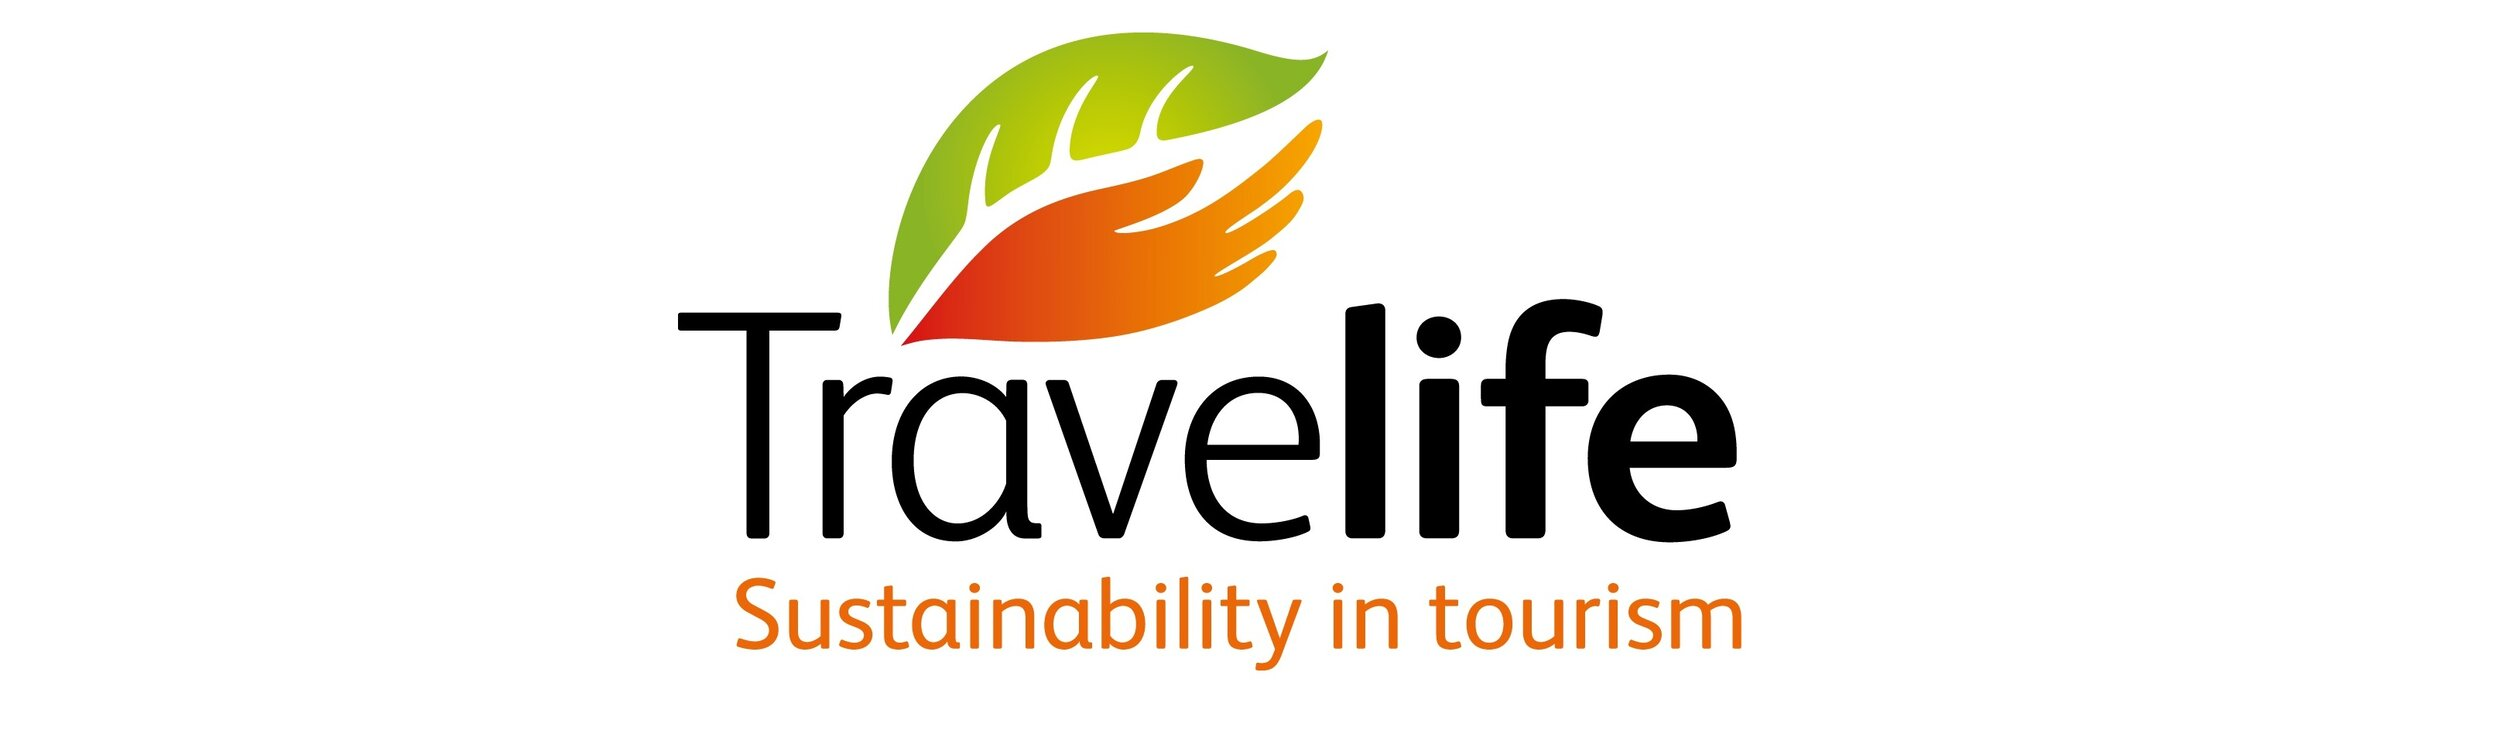 travelife_logo_stacked_cmyk.jpg